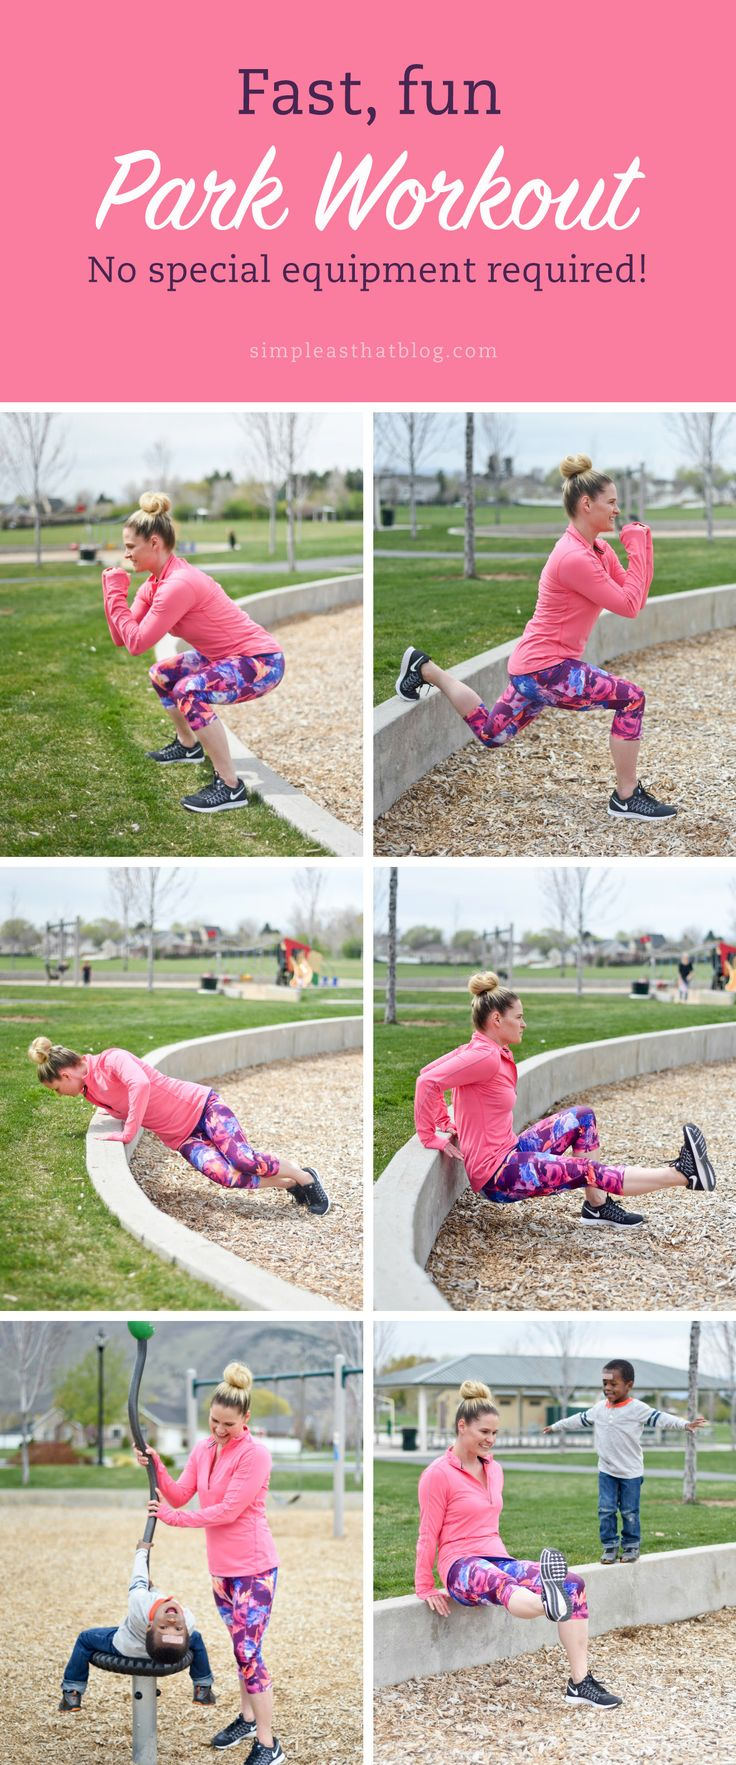 This park workout is a quick, challenging circuit you can squeeze in between swings, slides, and monkey bars. No equipment needed!